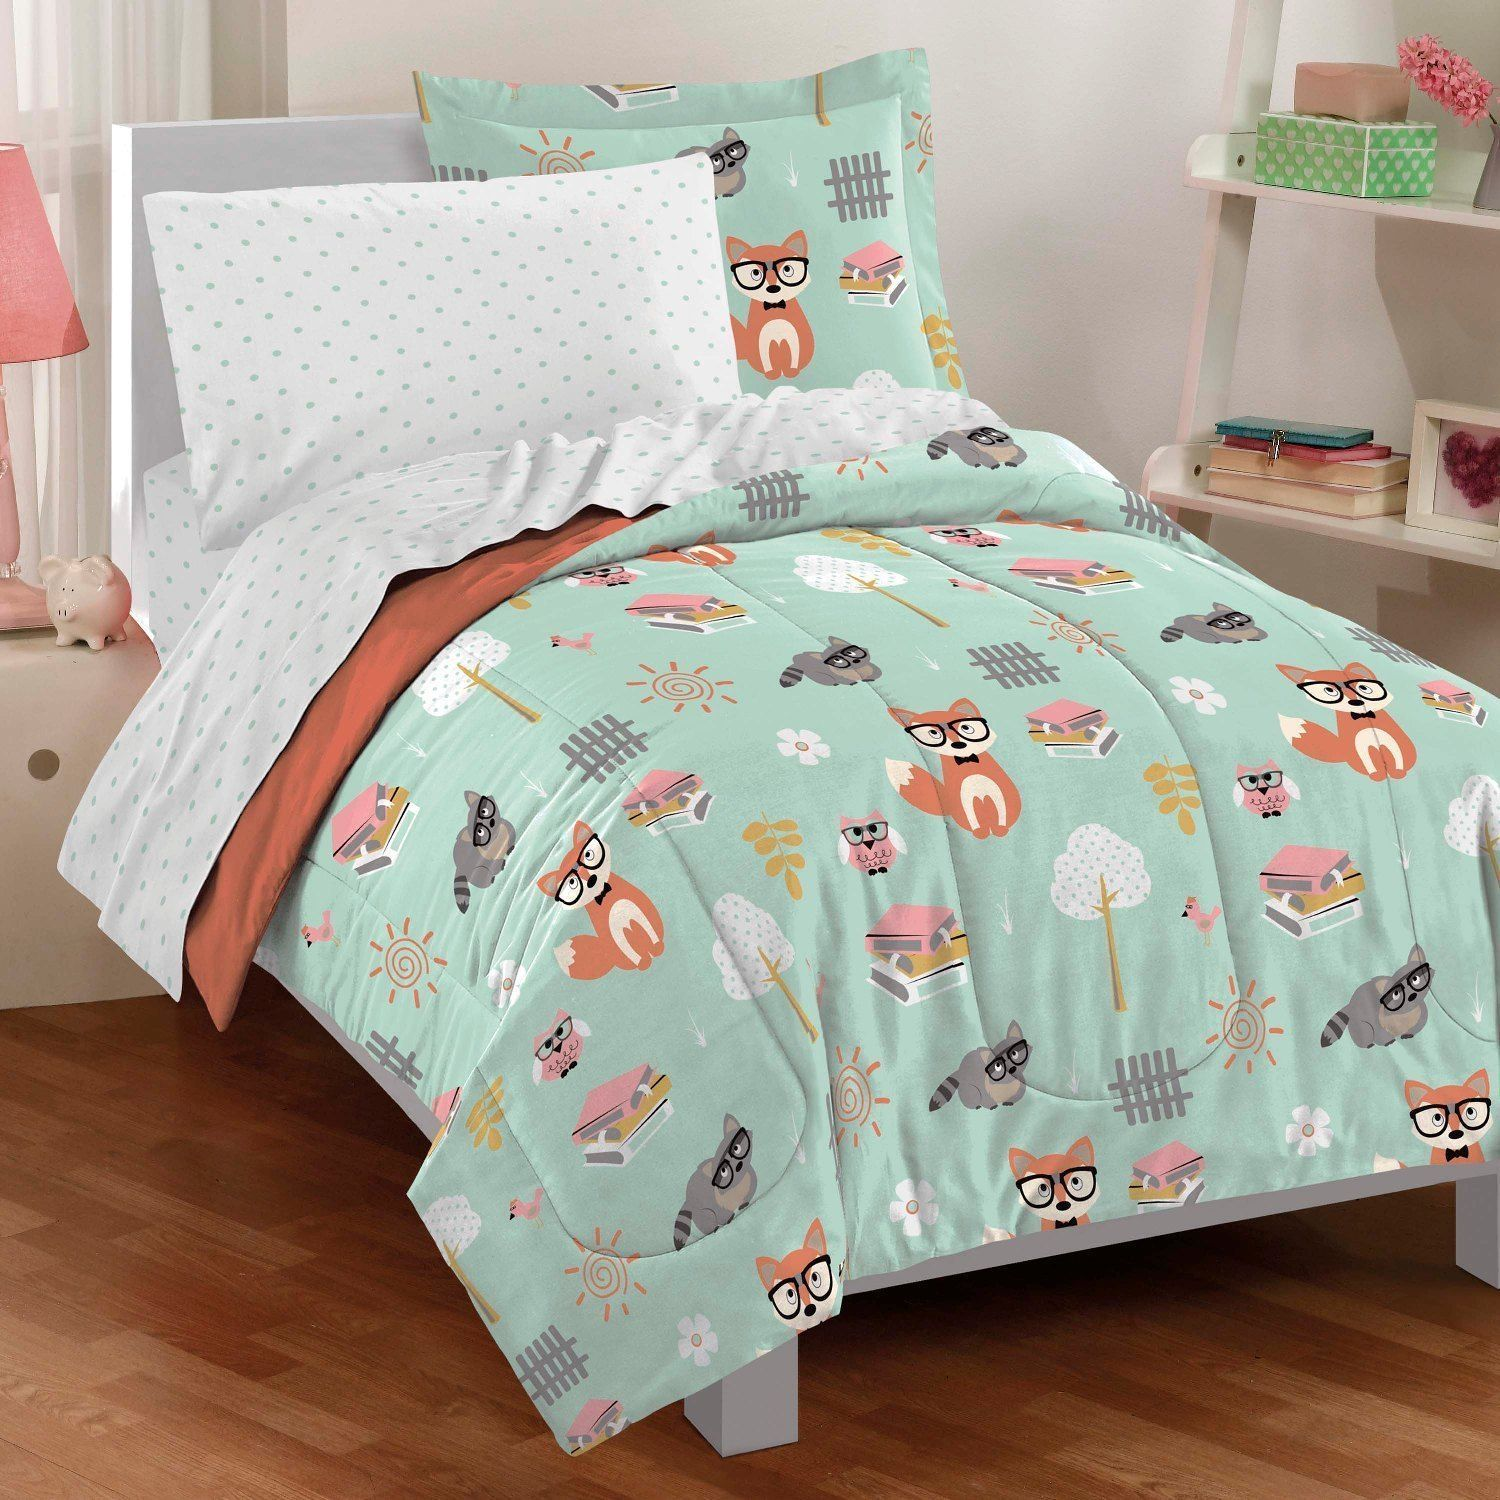 Totoro Bettwäsche This Cute Bed In A Bag Set Features Woodland Animals On A Mint